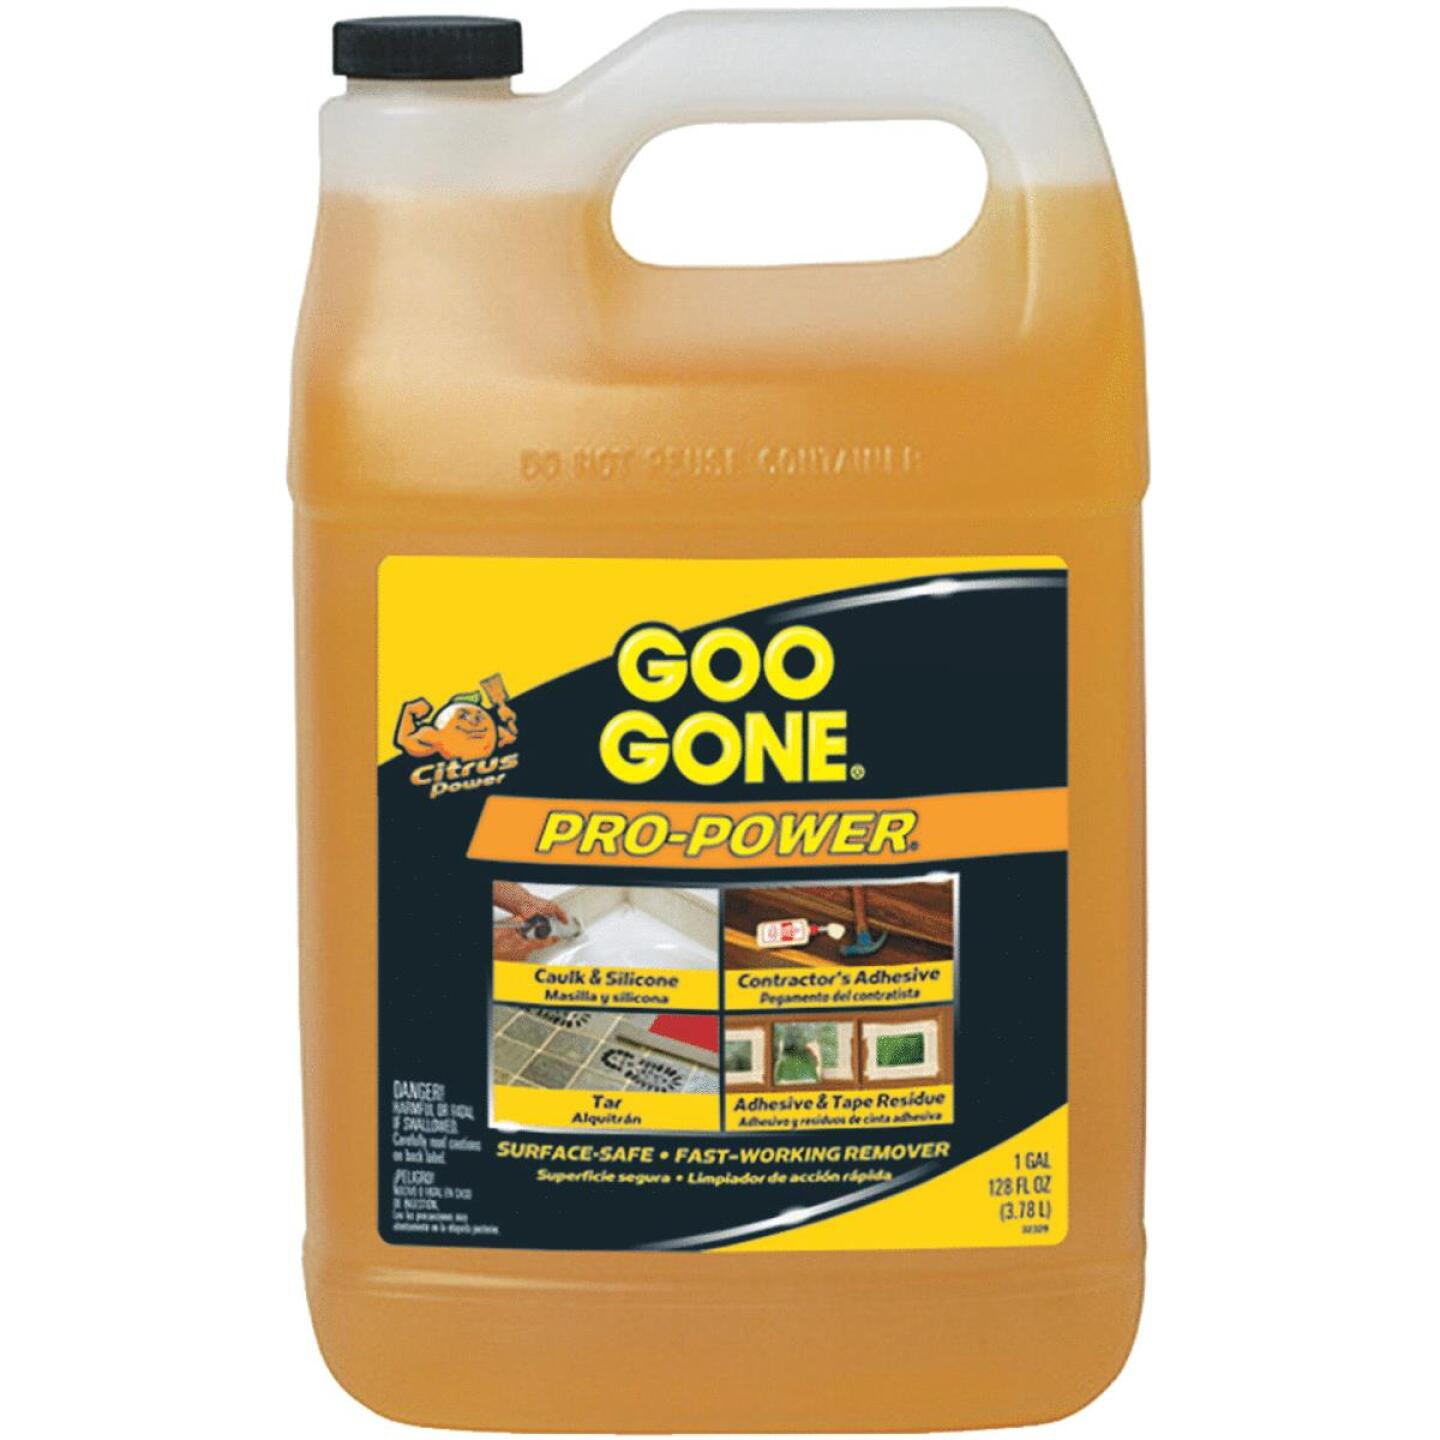 Goo Gone 1 Gal. Pro-Power Adhesive Remover Image 7